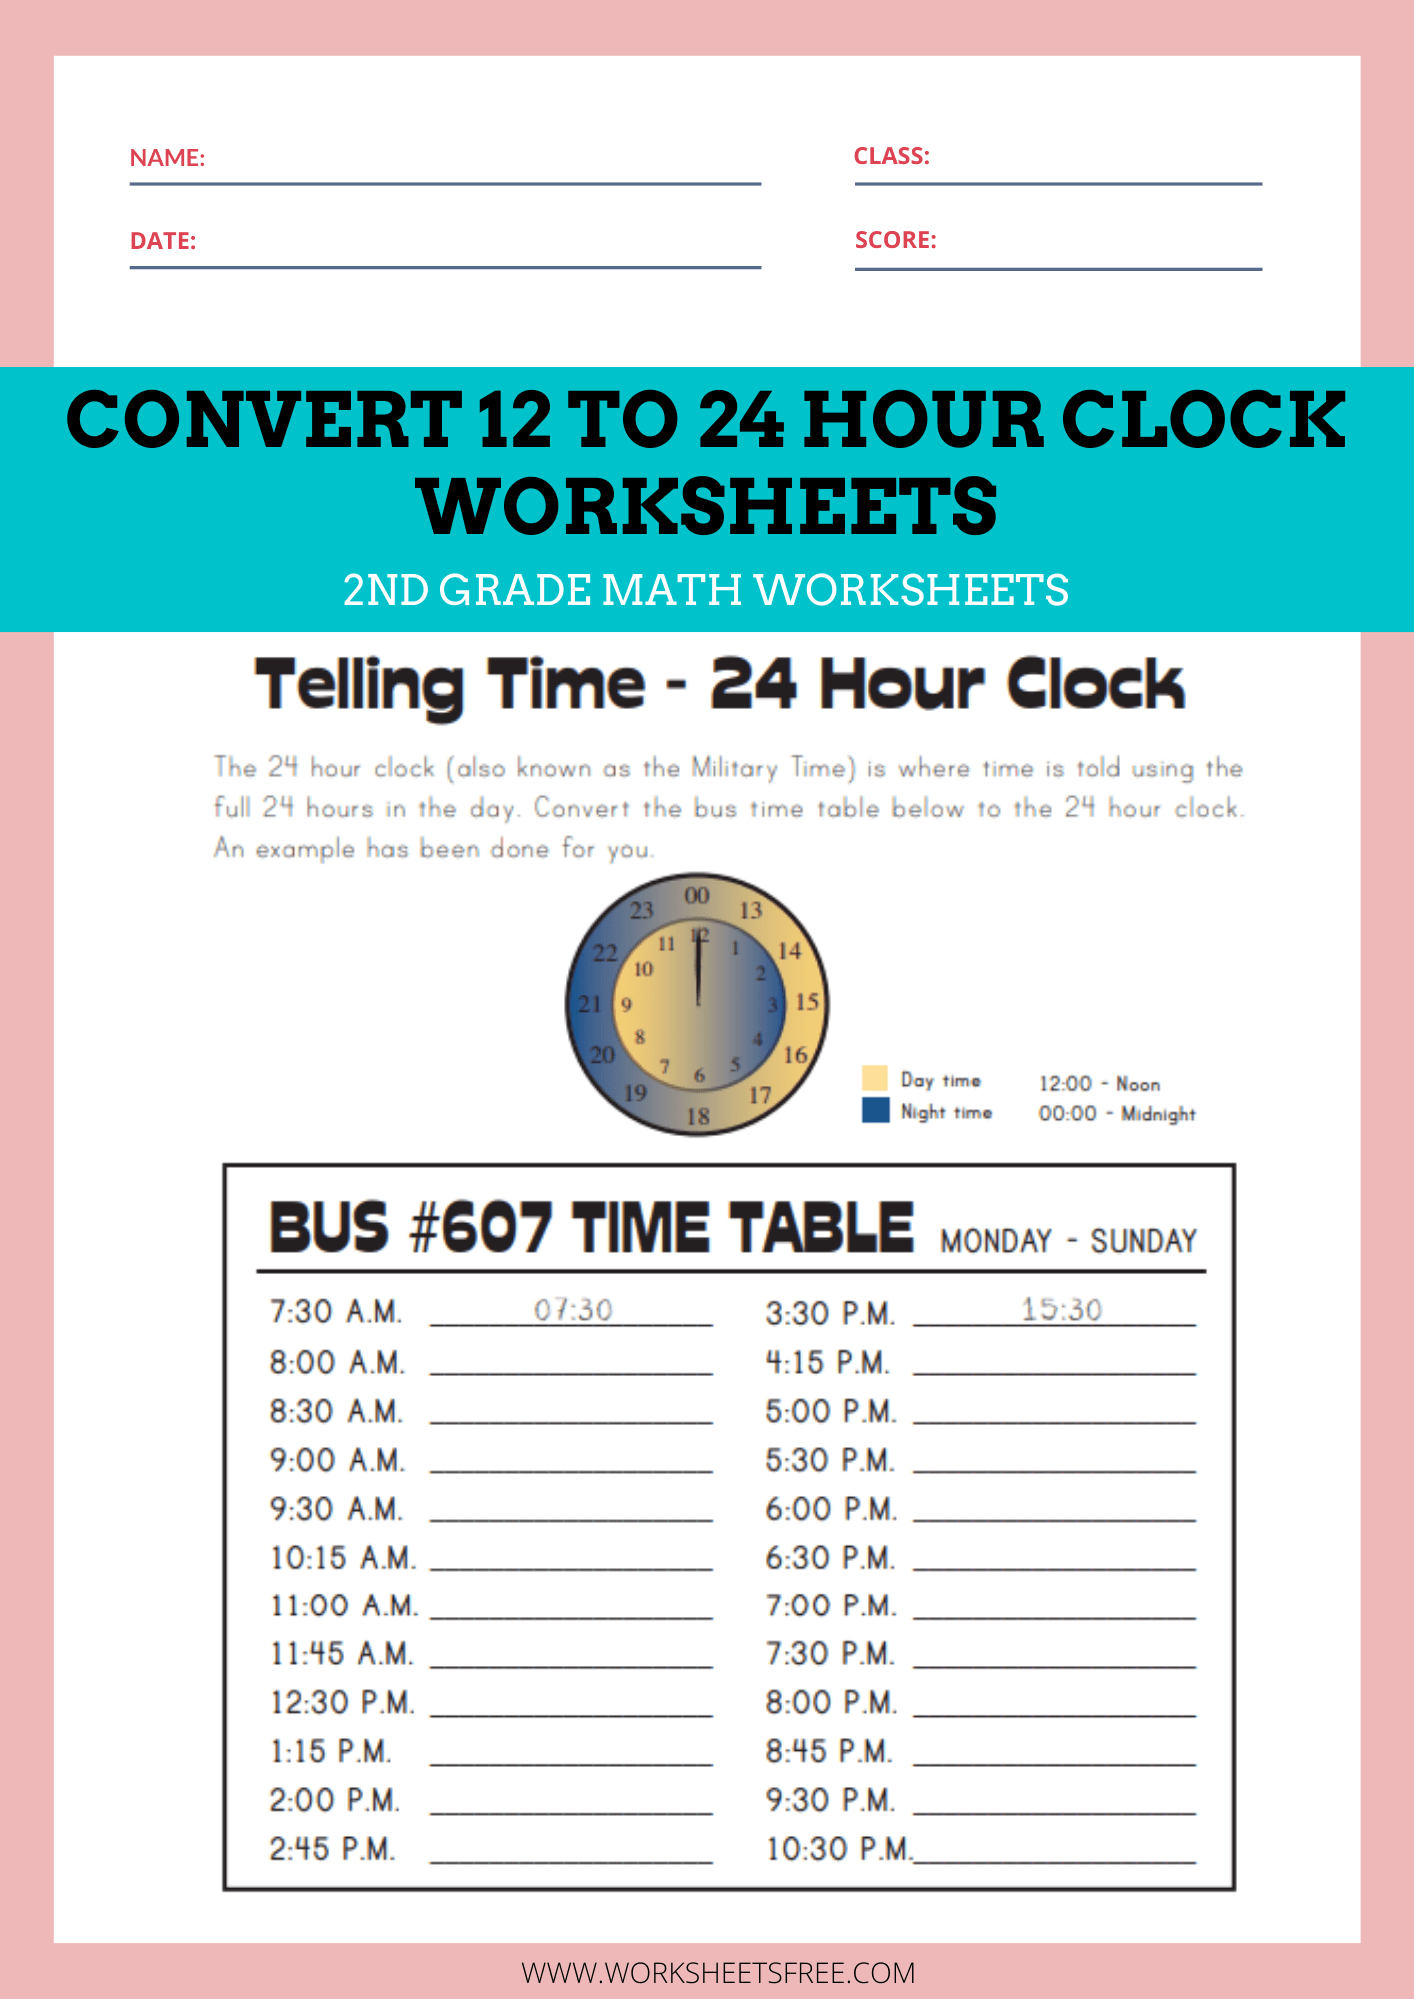 Convert-12-to-24-Hour-Clock-Worksheets   Worksheets Free [ 2000 x 1414 Pixel ]